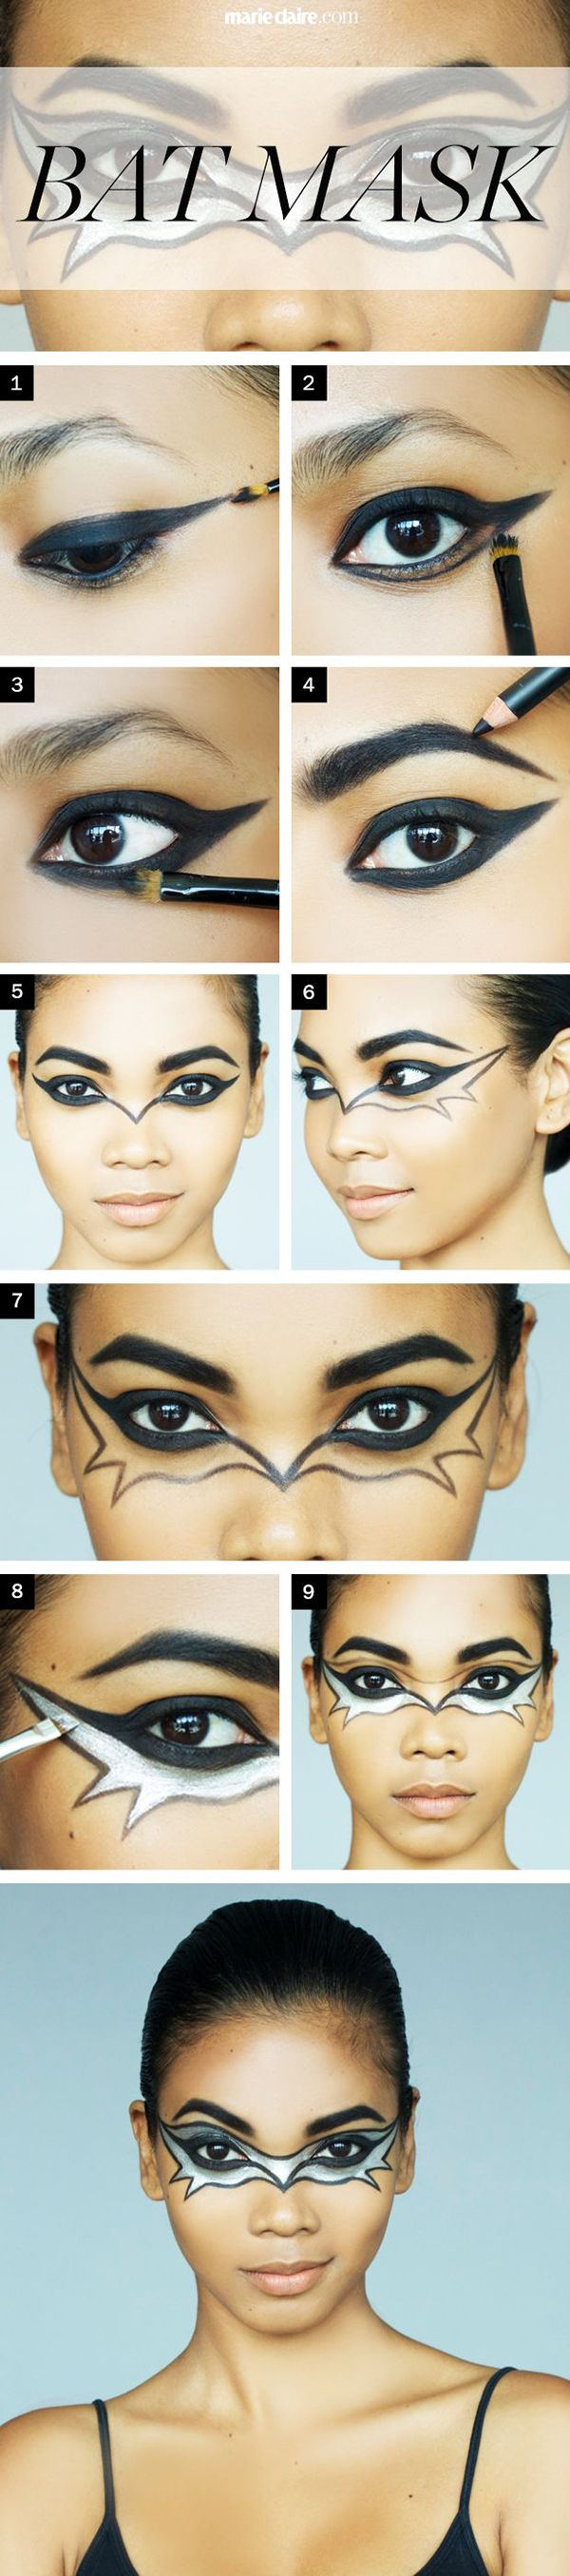 Halloween costumes (meaning clothes and various accessories) are awesome. Some of them are even beyond awesome. But you know what is a little unexpected and seriously takes some skill? A detailed, realistic, very interesting Halloween makeup look. Sometimes these makeup looks are so good that you don't even need to pair them with a costume. … Read More